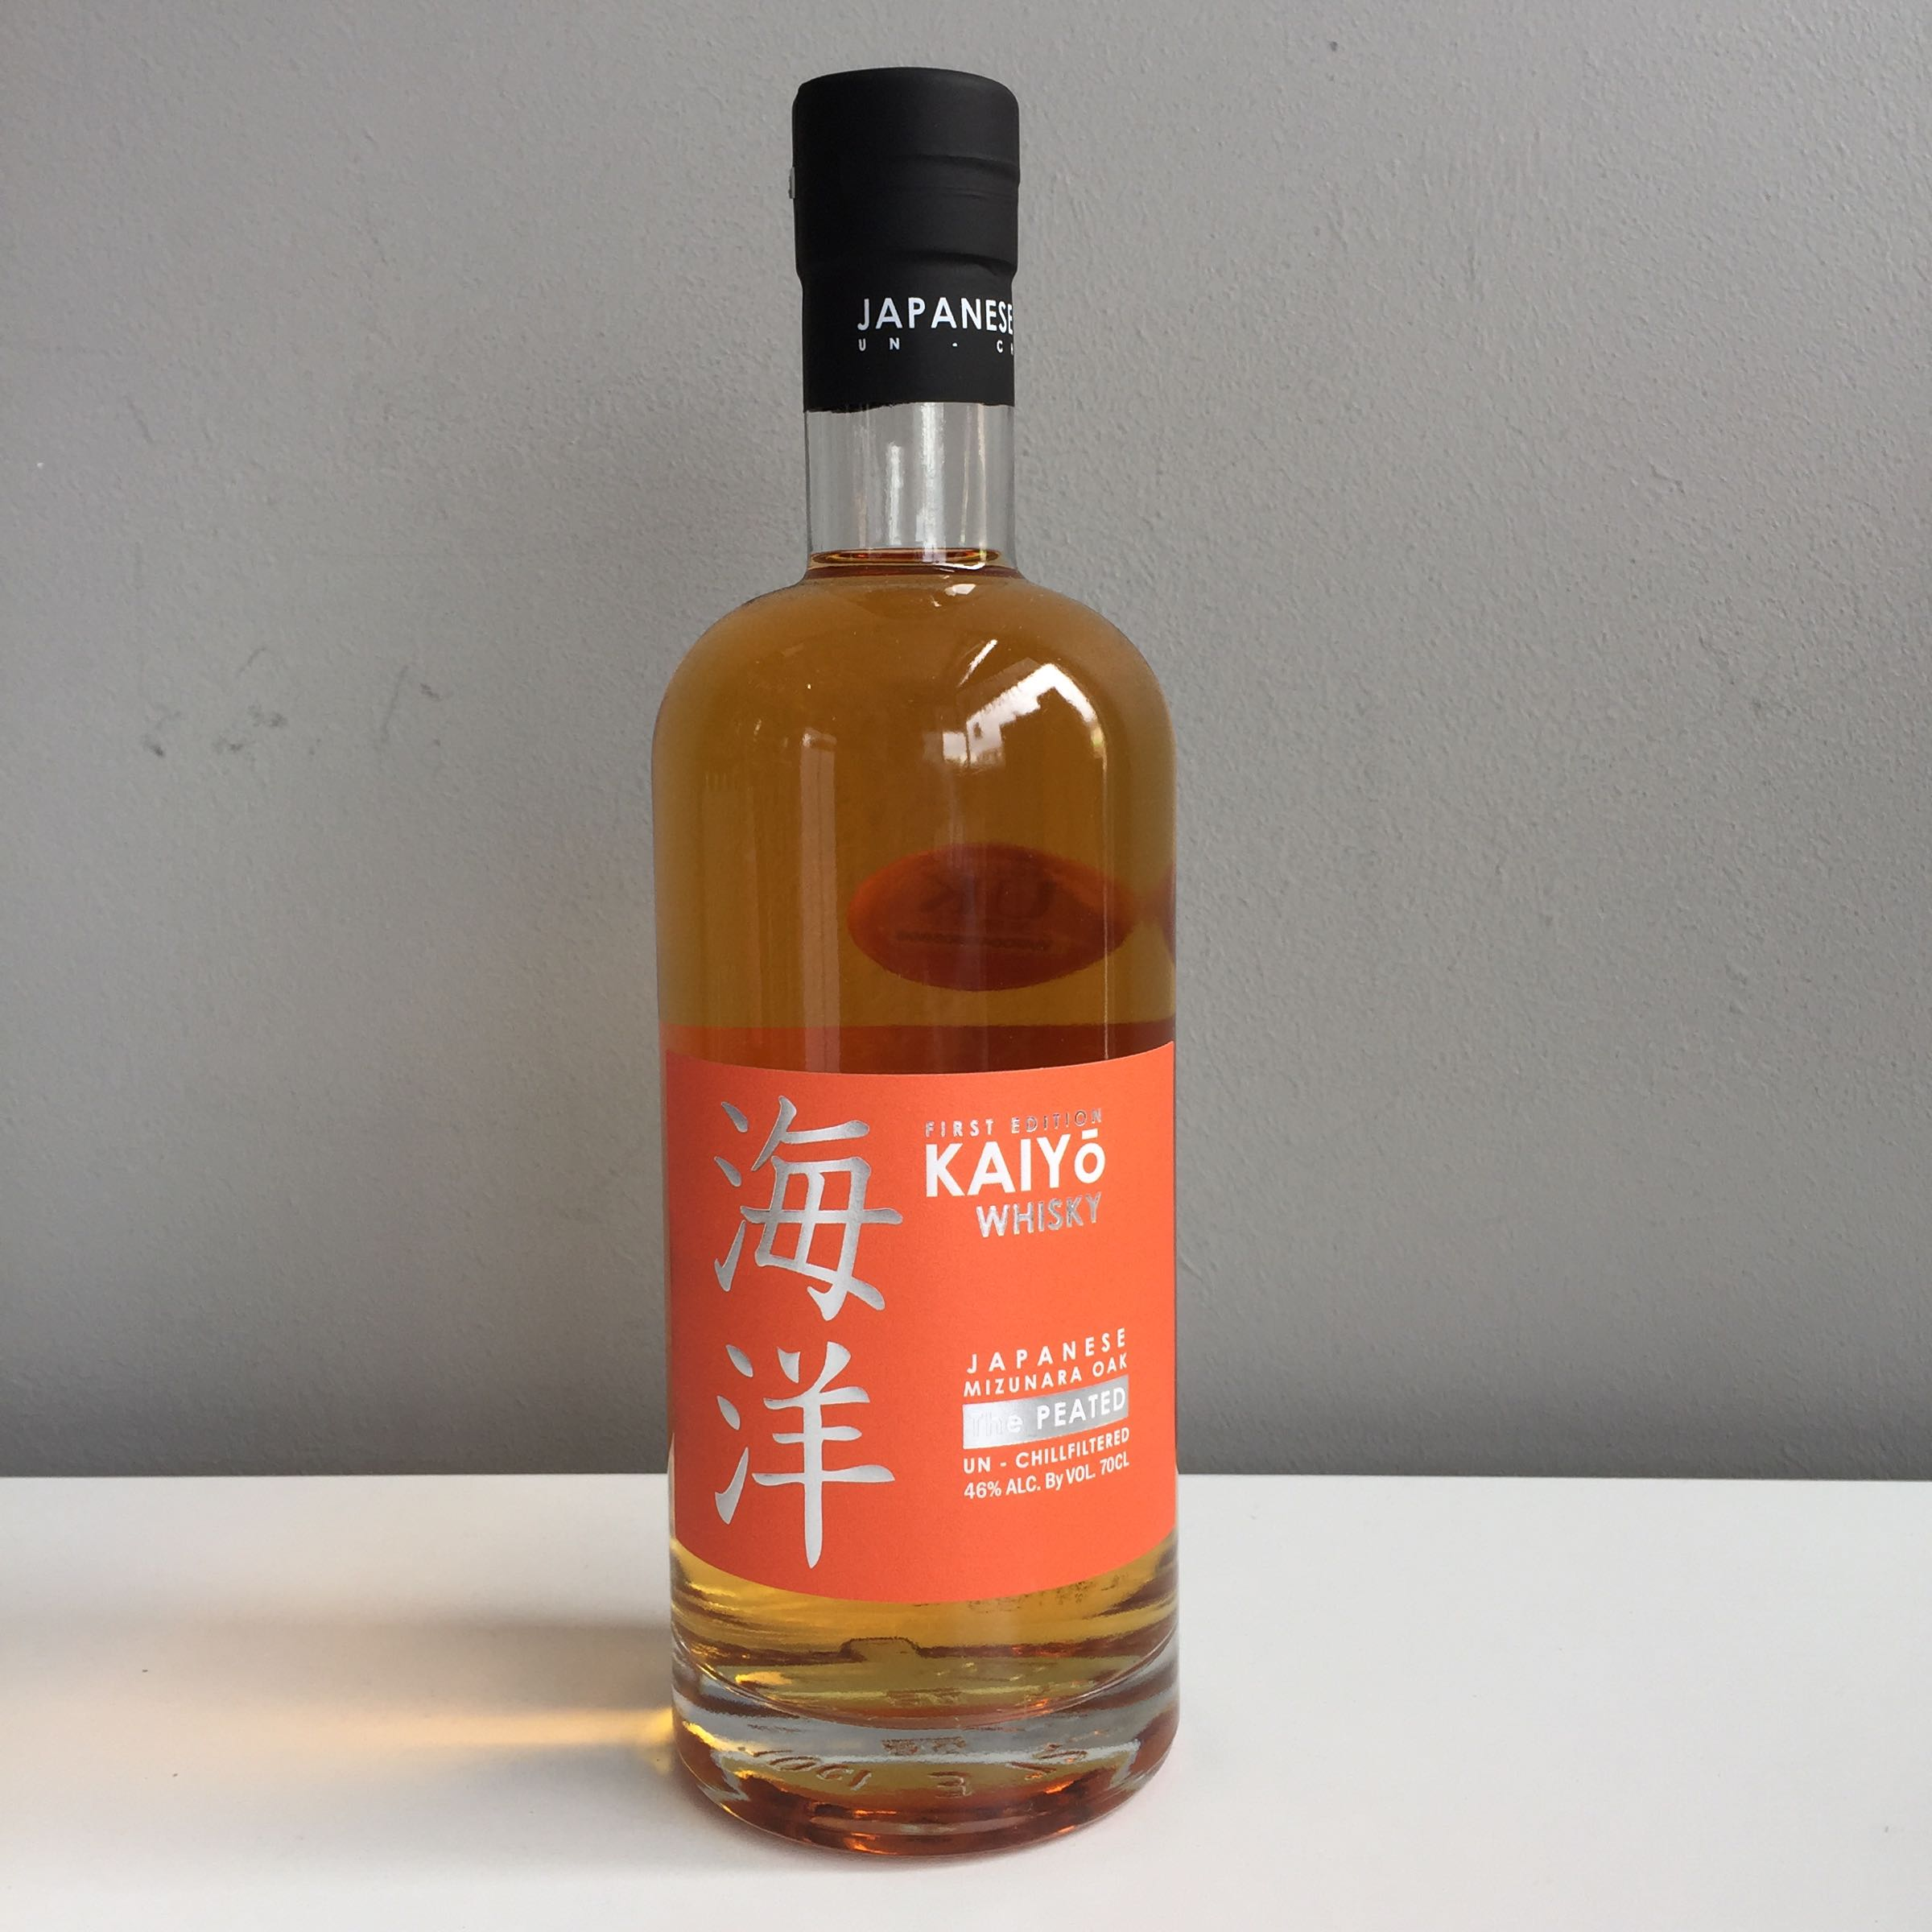 Kaiyo Whisky, Japanese Mizunara Oak, Peated 70cl 46% ABV